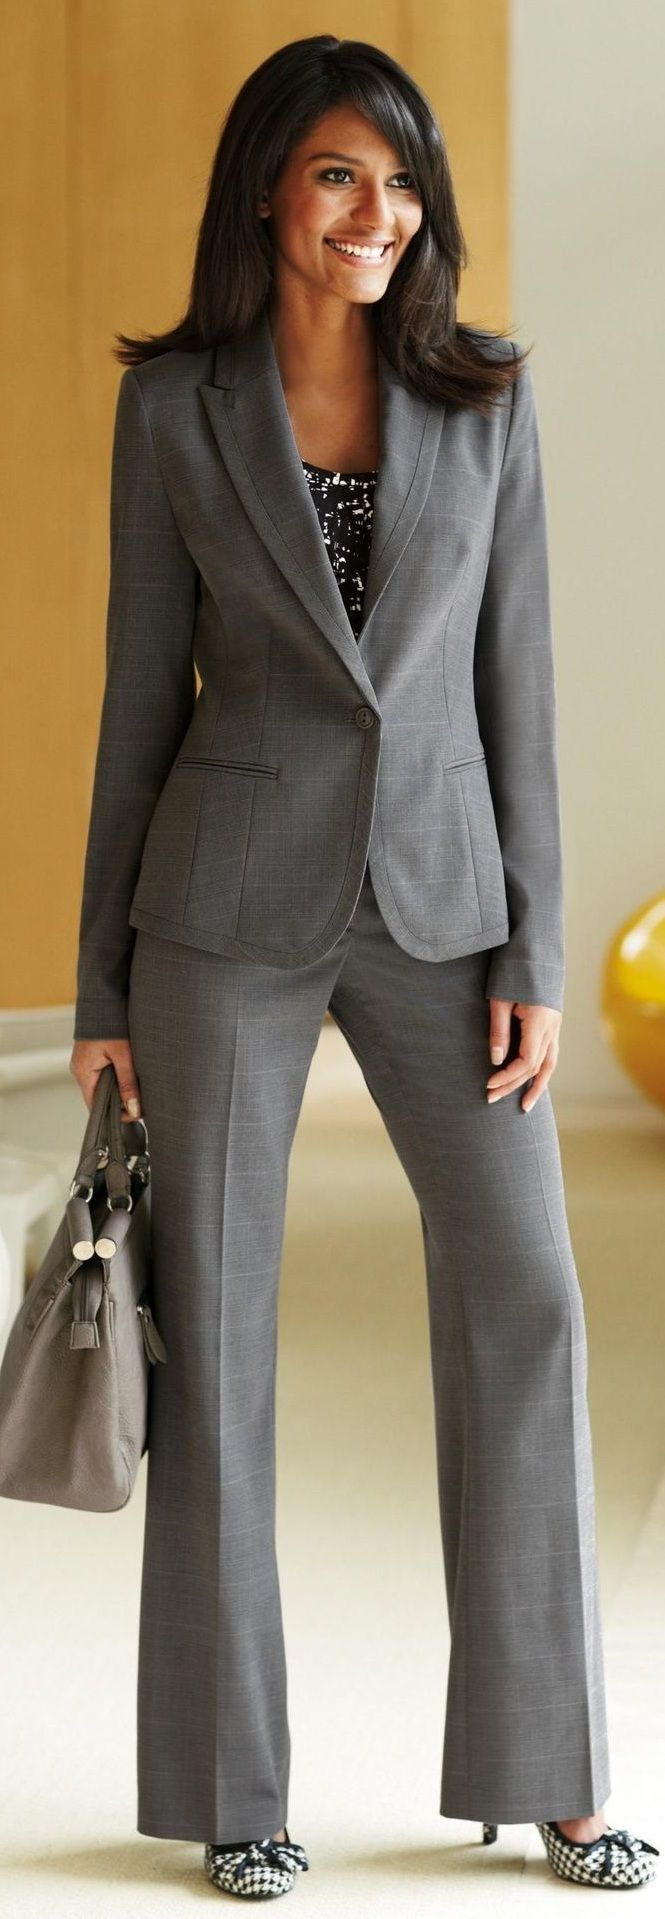 Business Suit 9 to 5